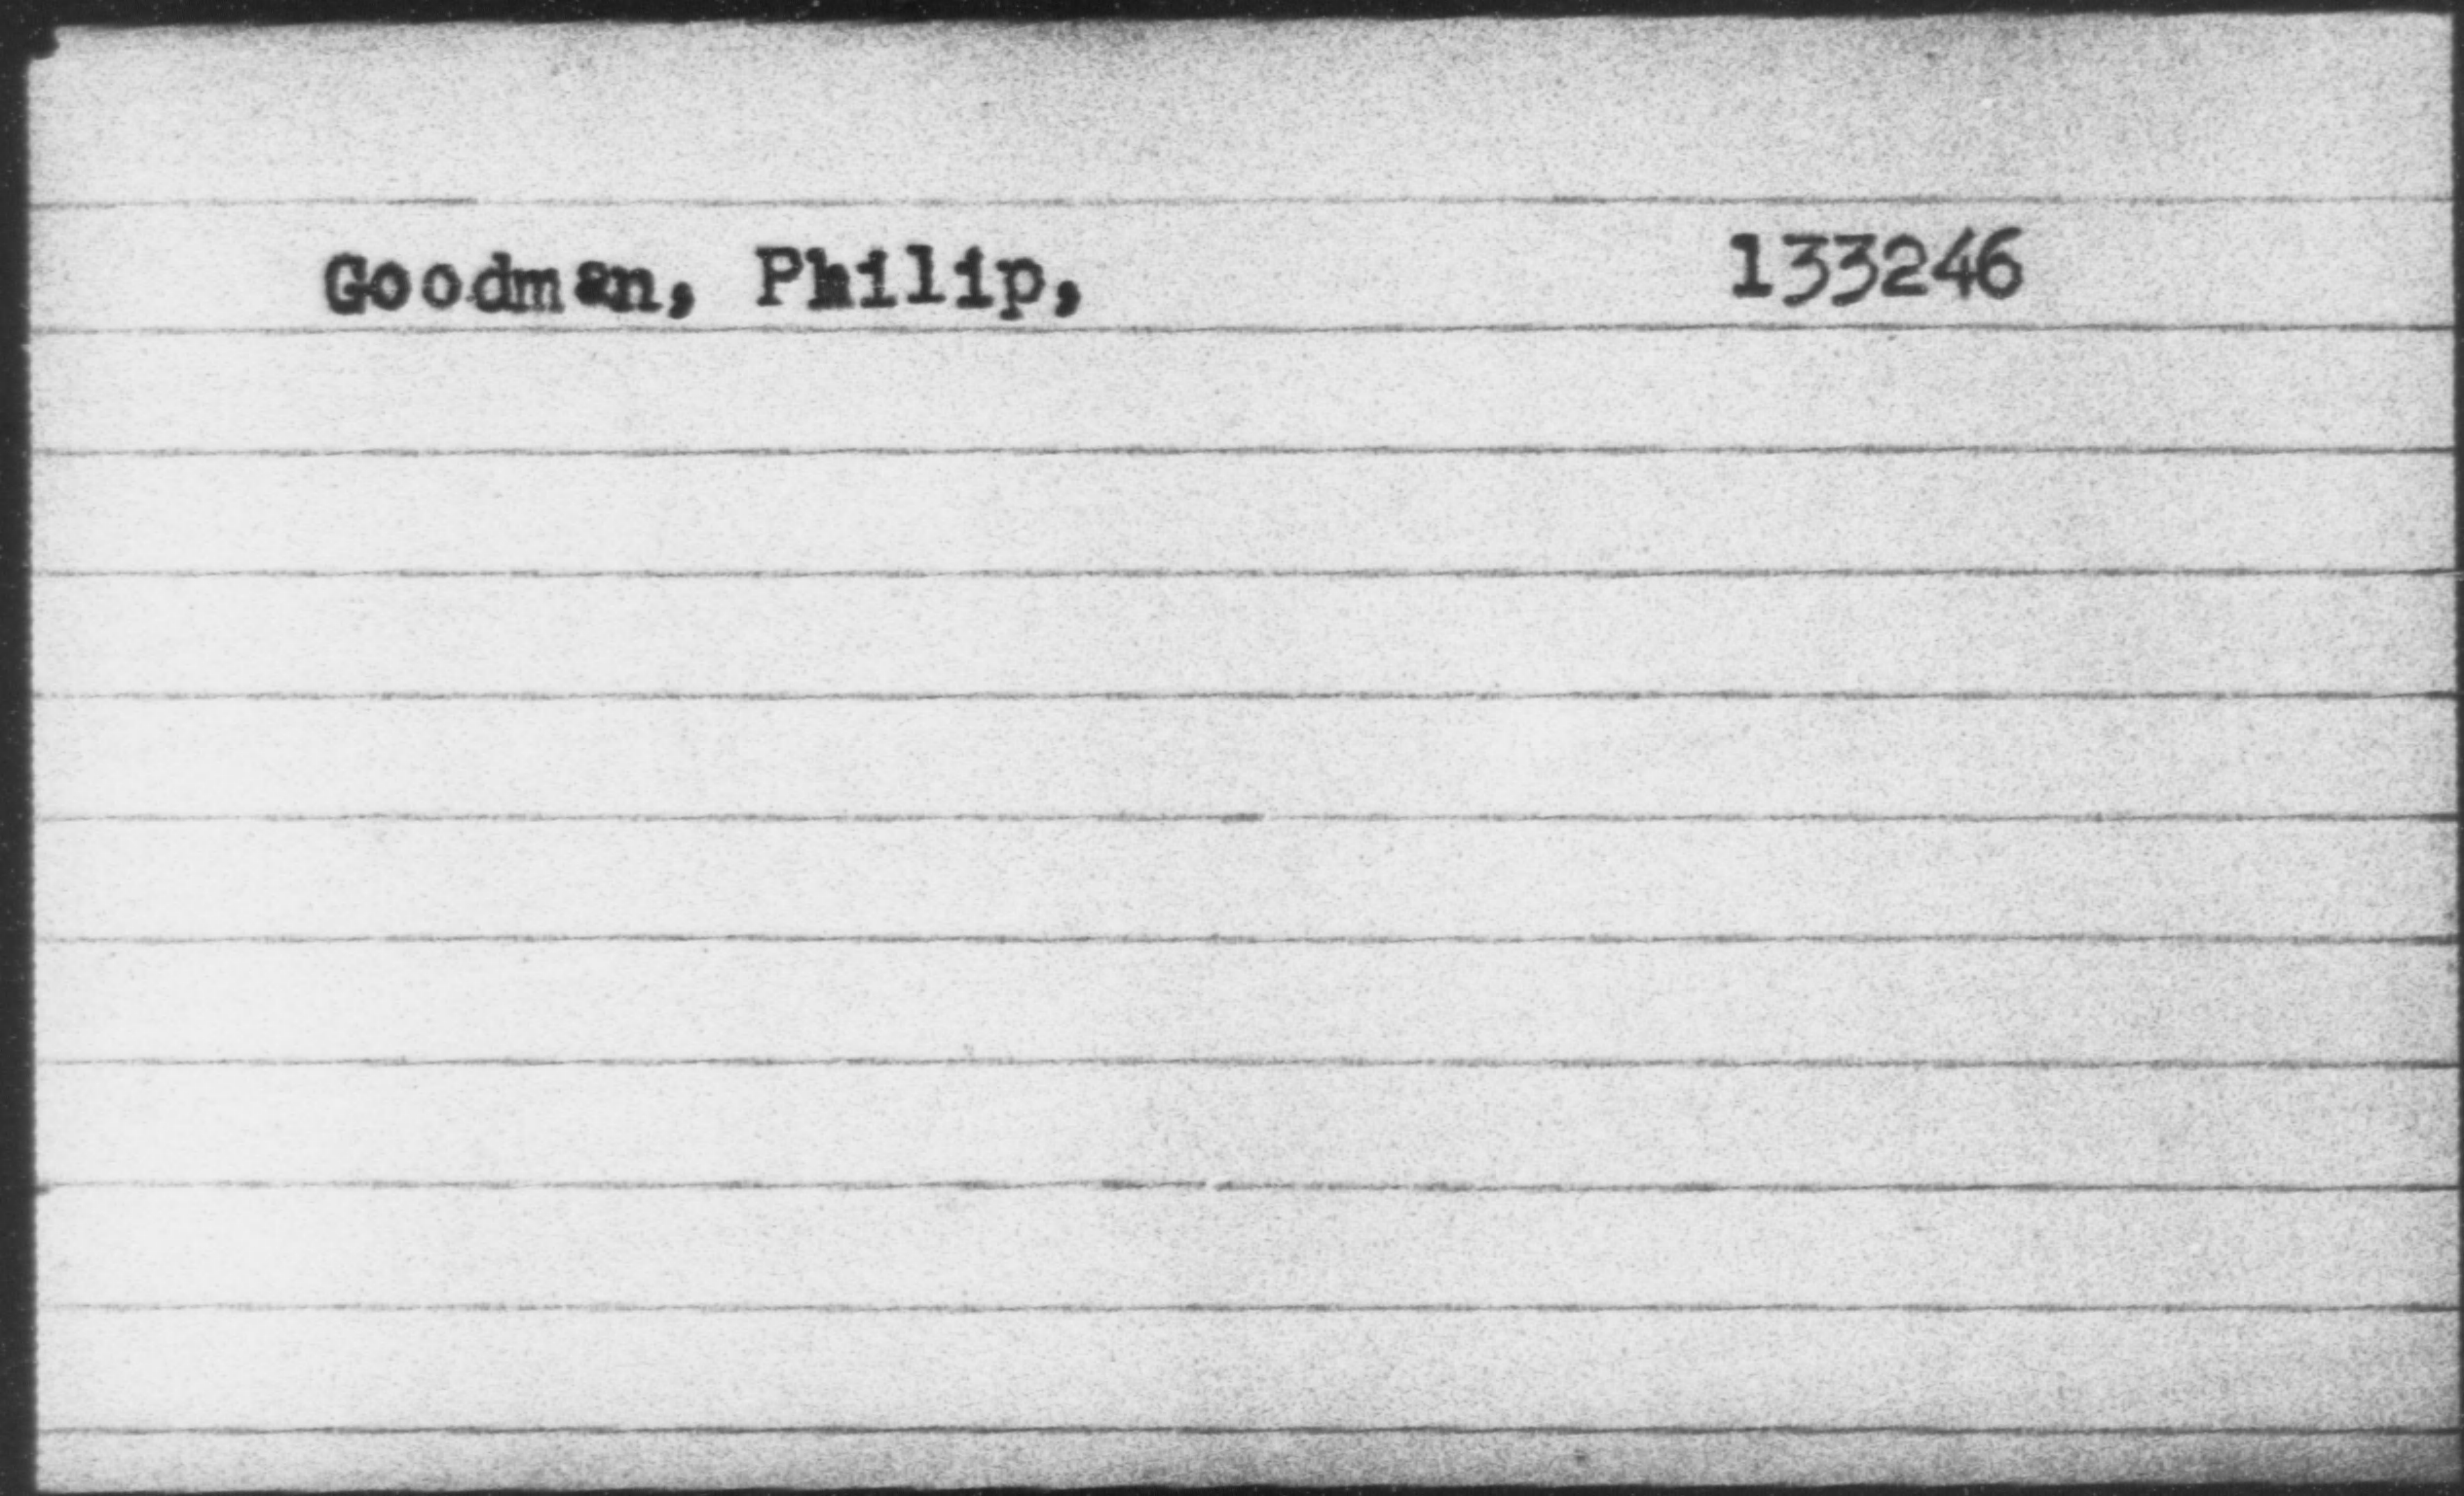 Goodman, Philip